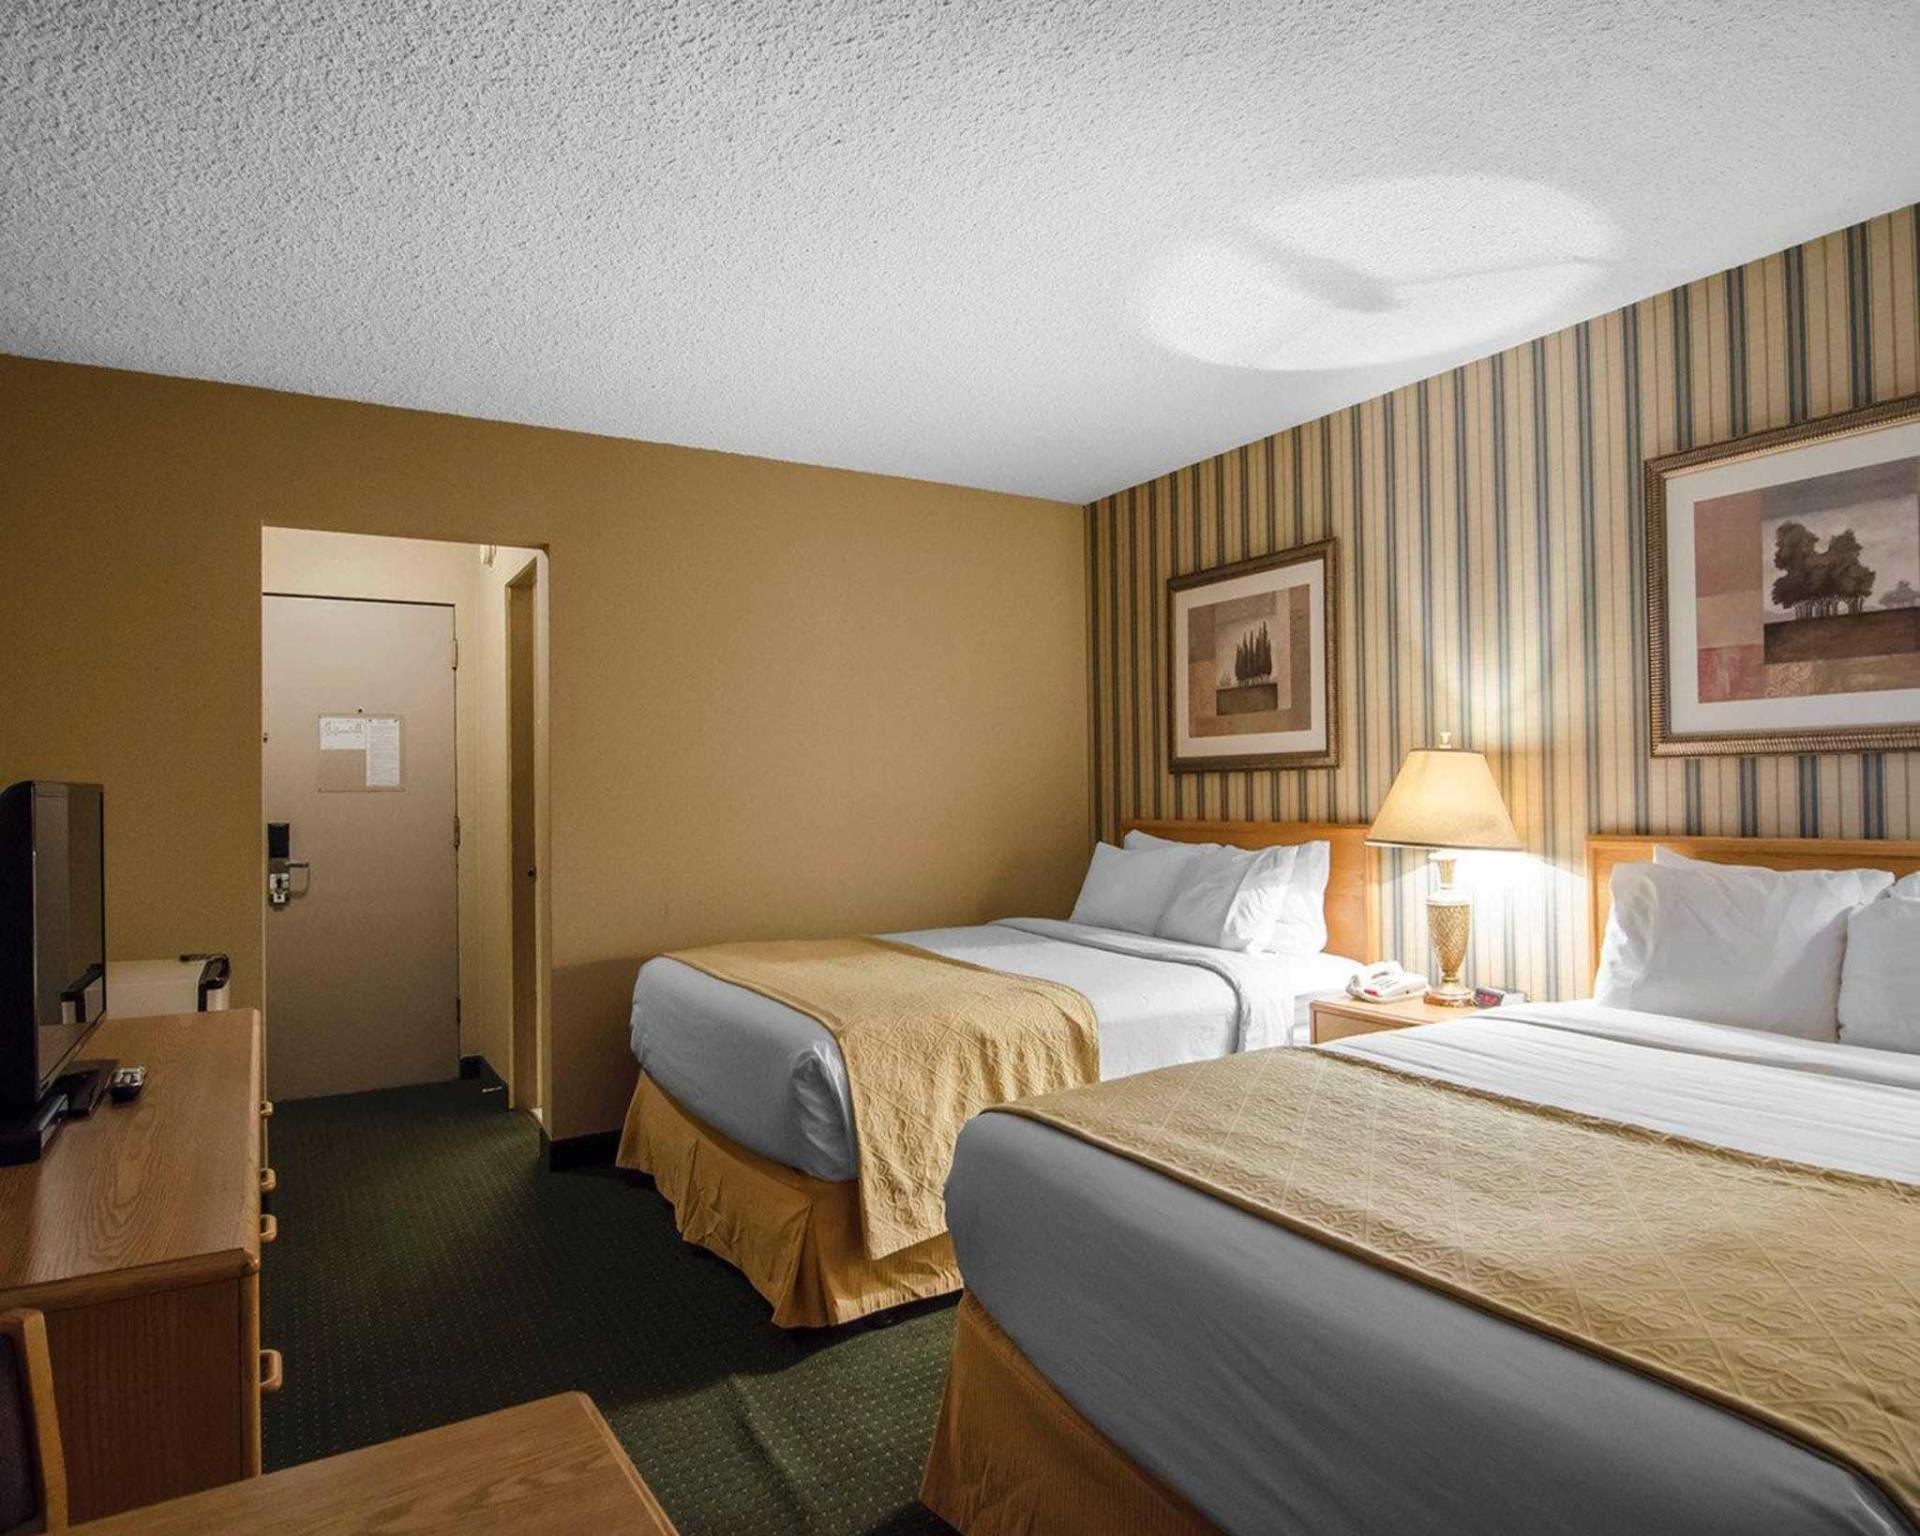 Quality Inn Whitecourt, Division No. 13